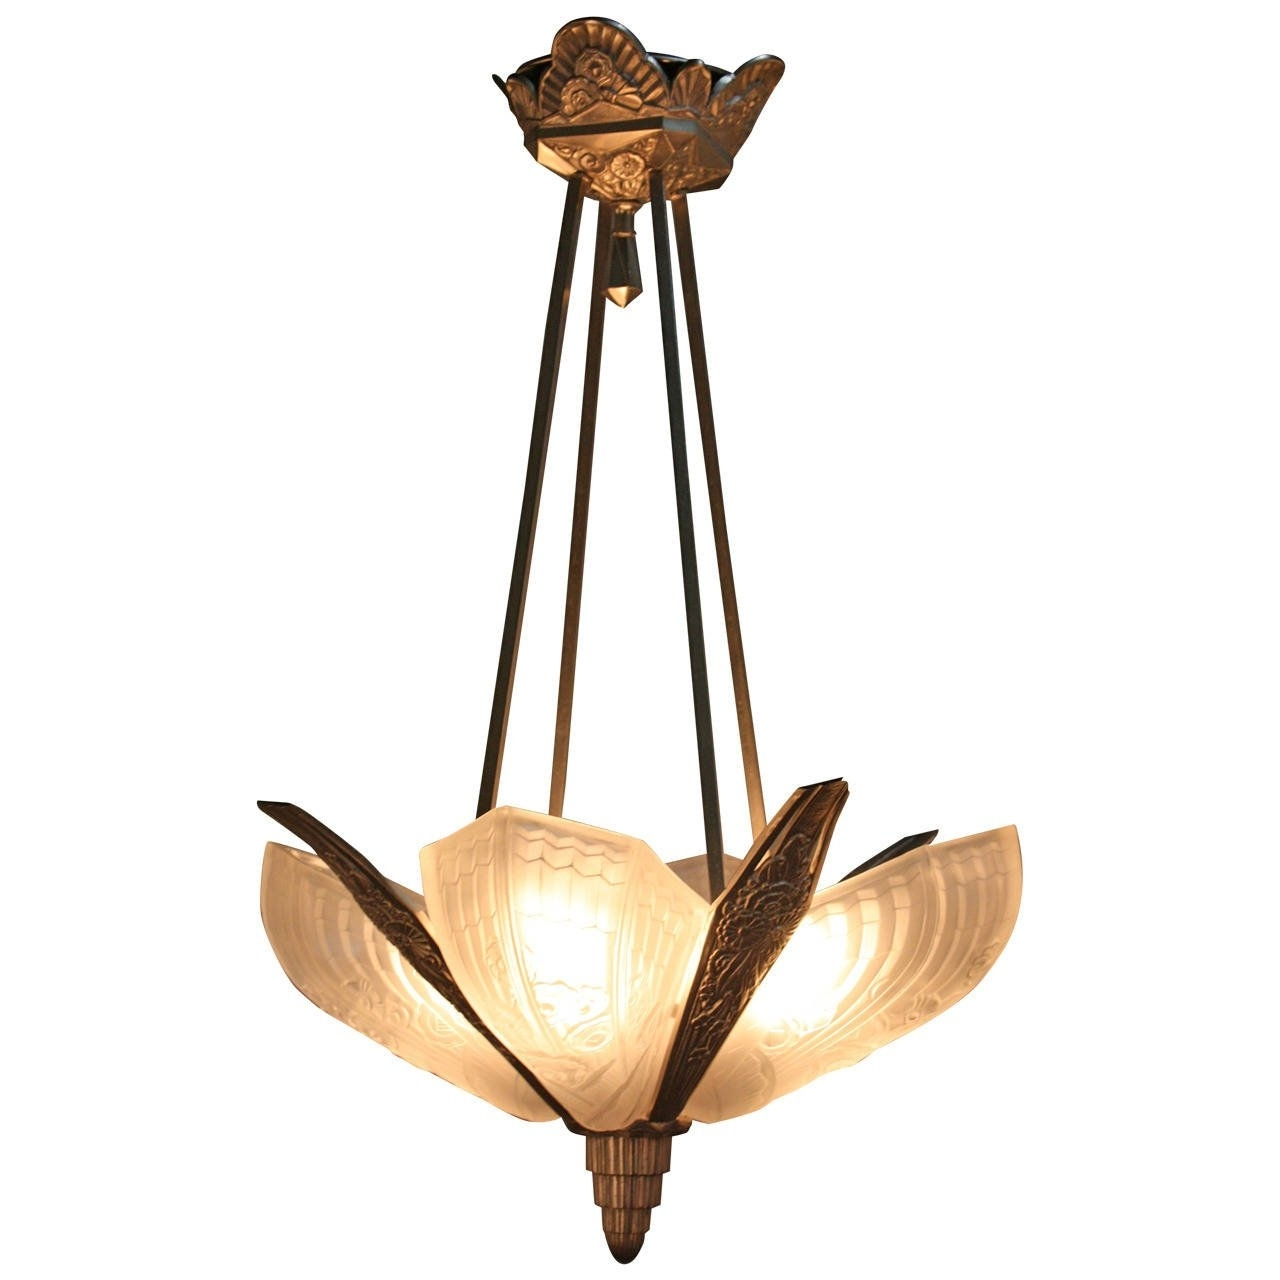 2018 1920S Art Deco Chandelier At 1Stdibs Pertaining To Art Deco Chandelier (View 4 of 15)